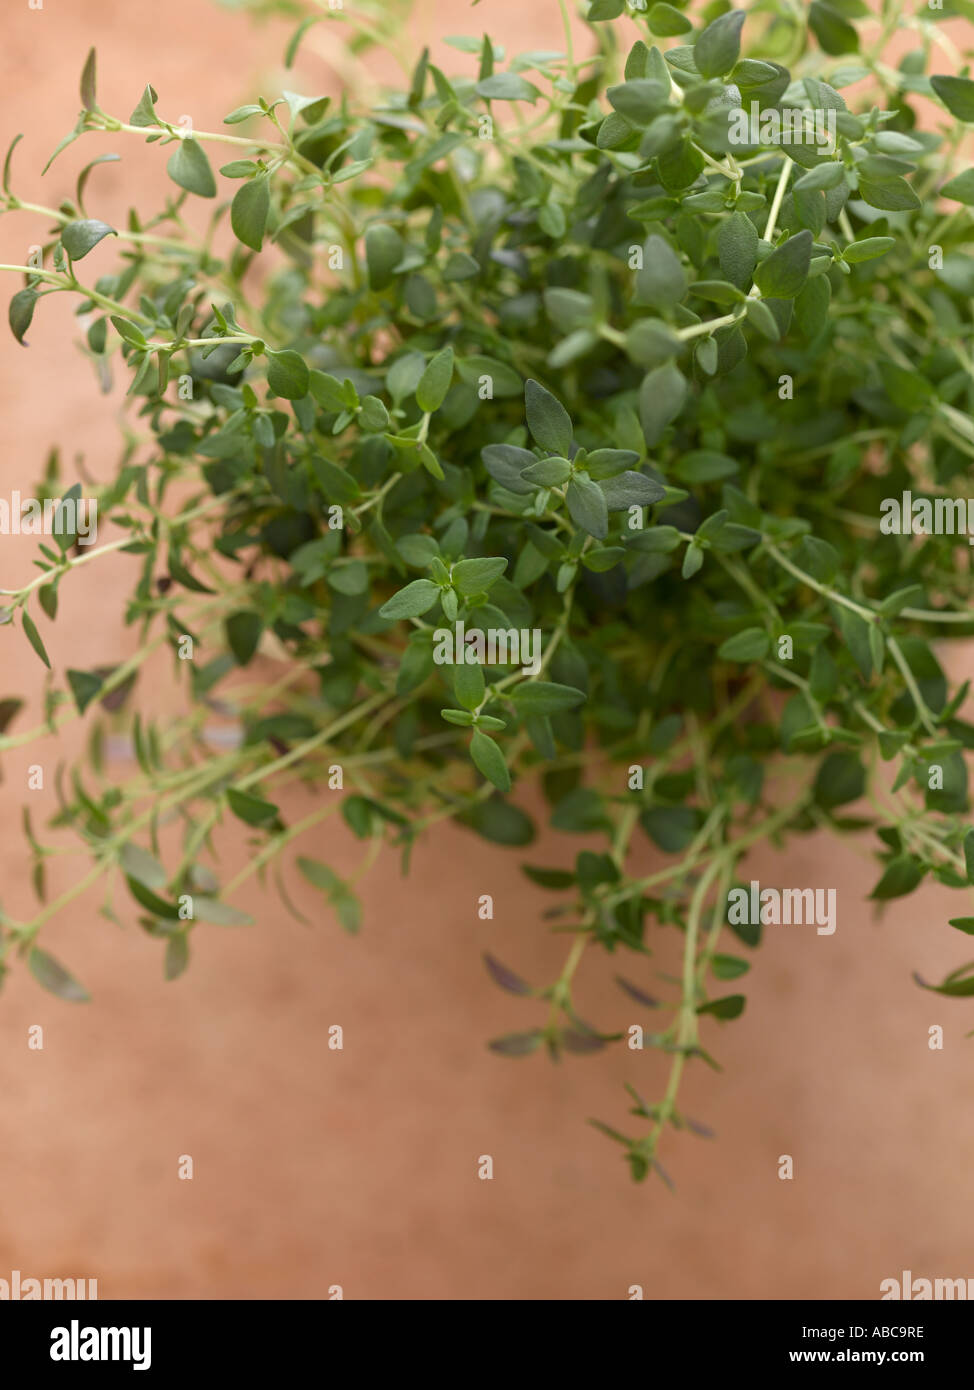 Thyme shot with Hasselblad medium format pro digital - Stock Image